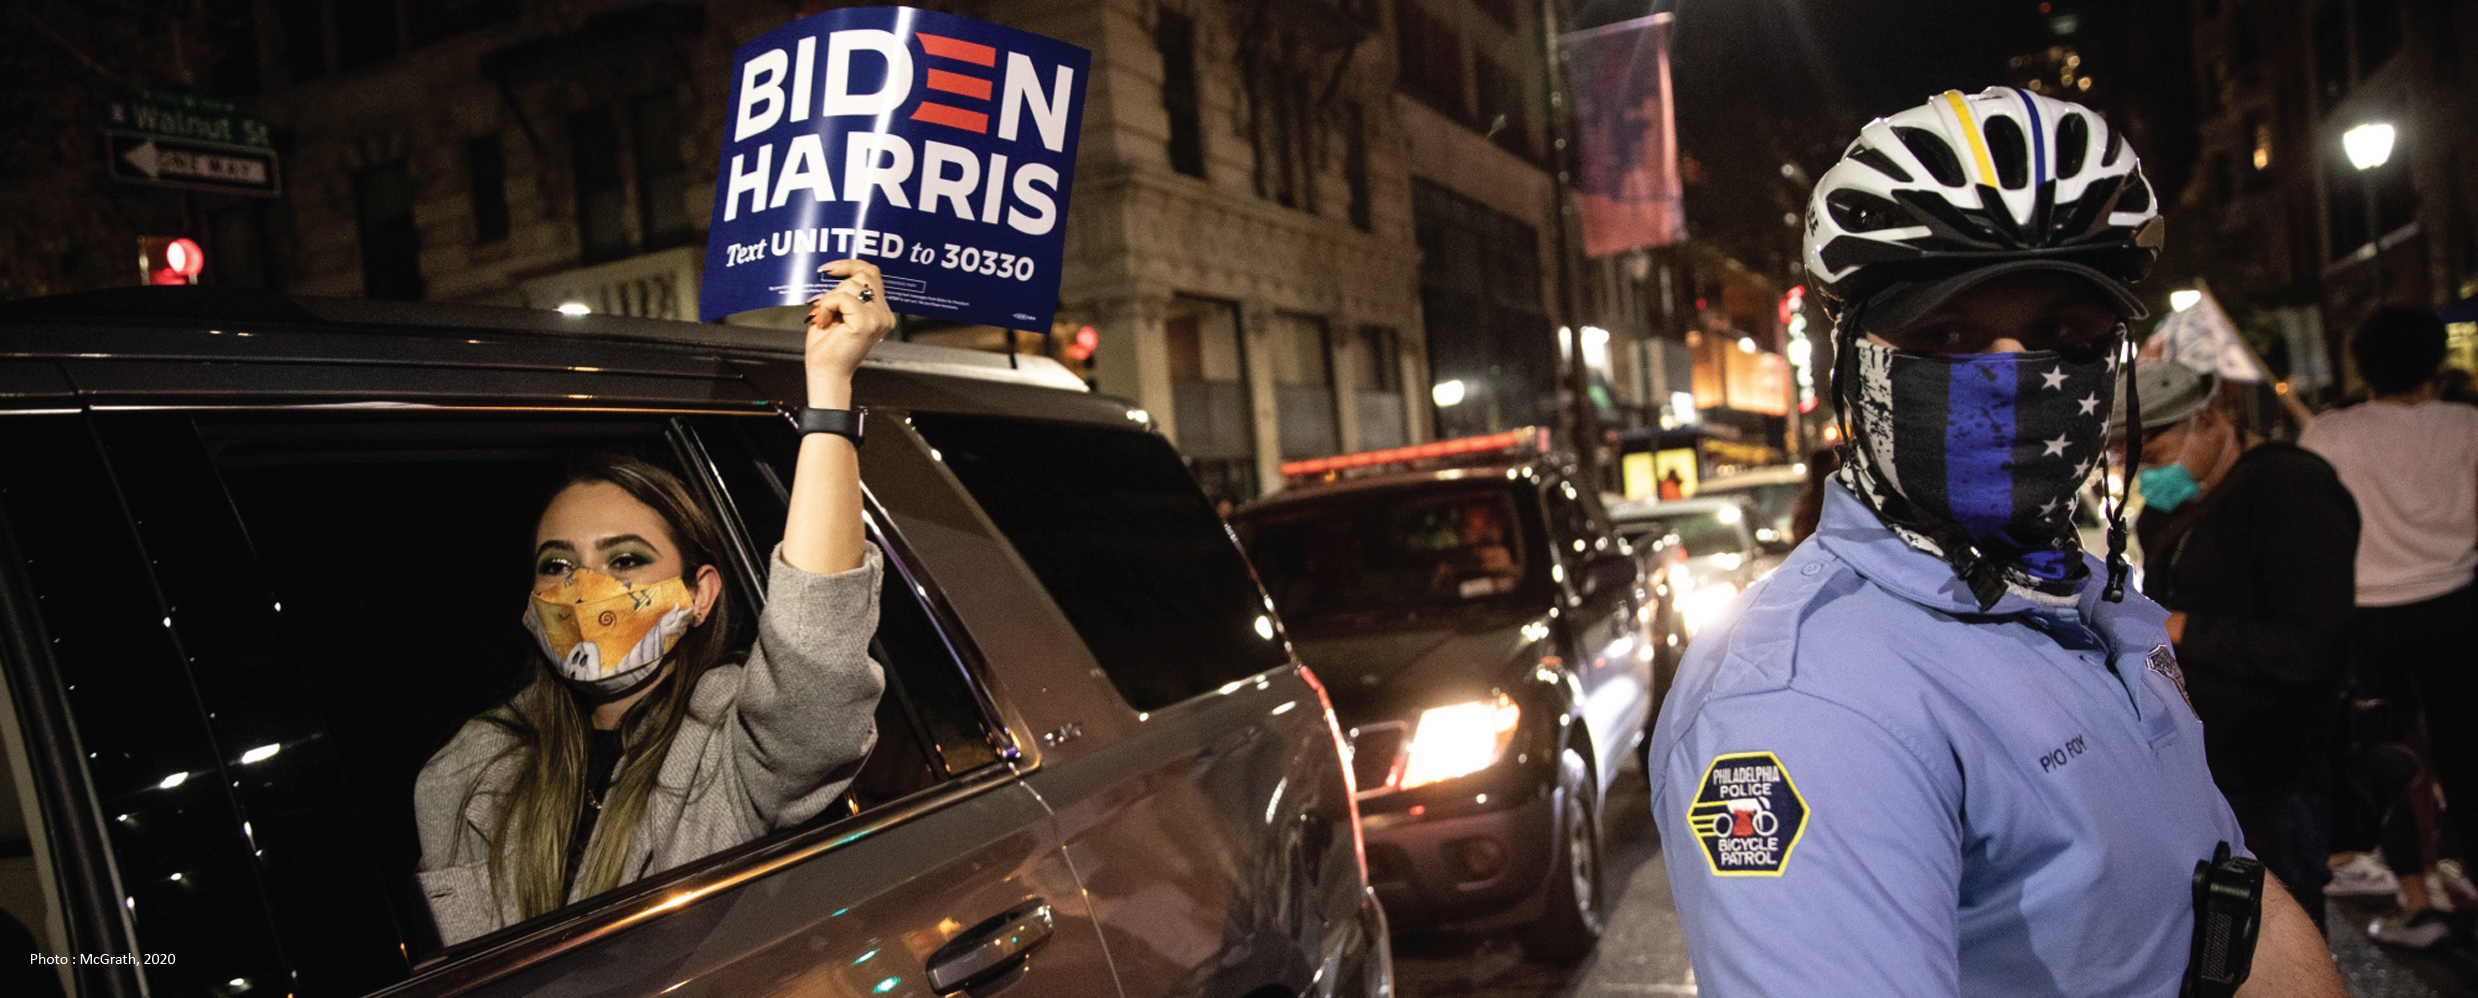 ventdouxprod 2020 Nicolas Barbier: Article on what people who voted for Joe Biden really stand for